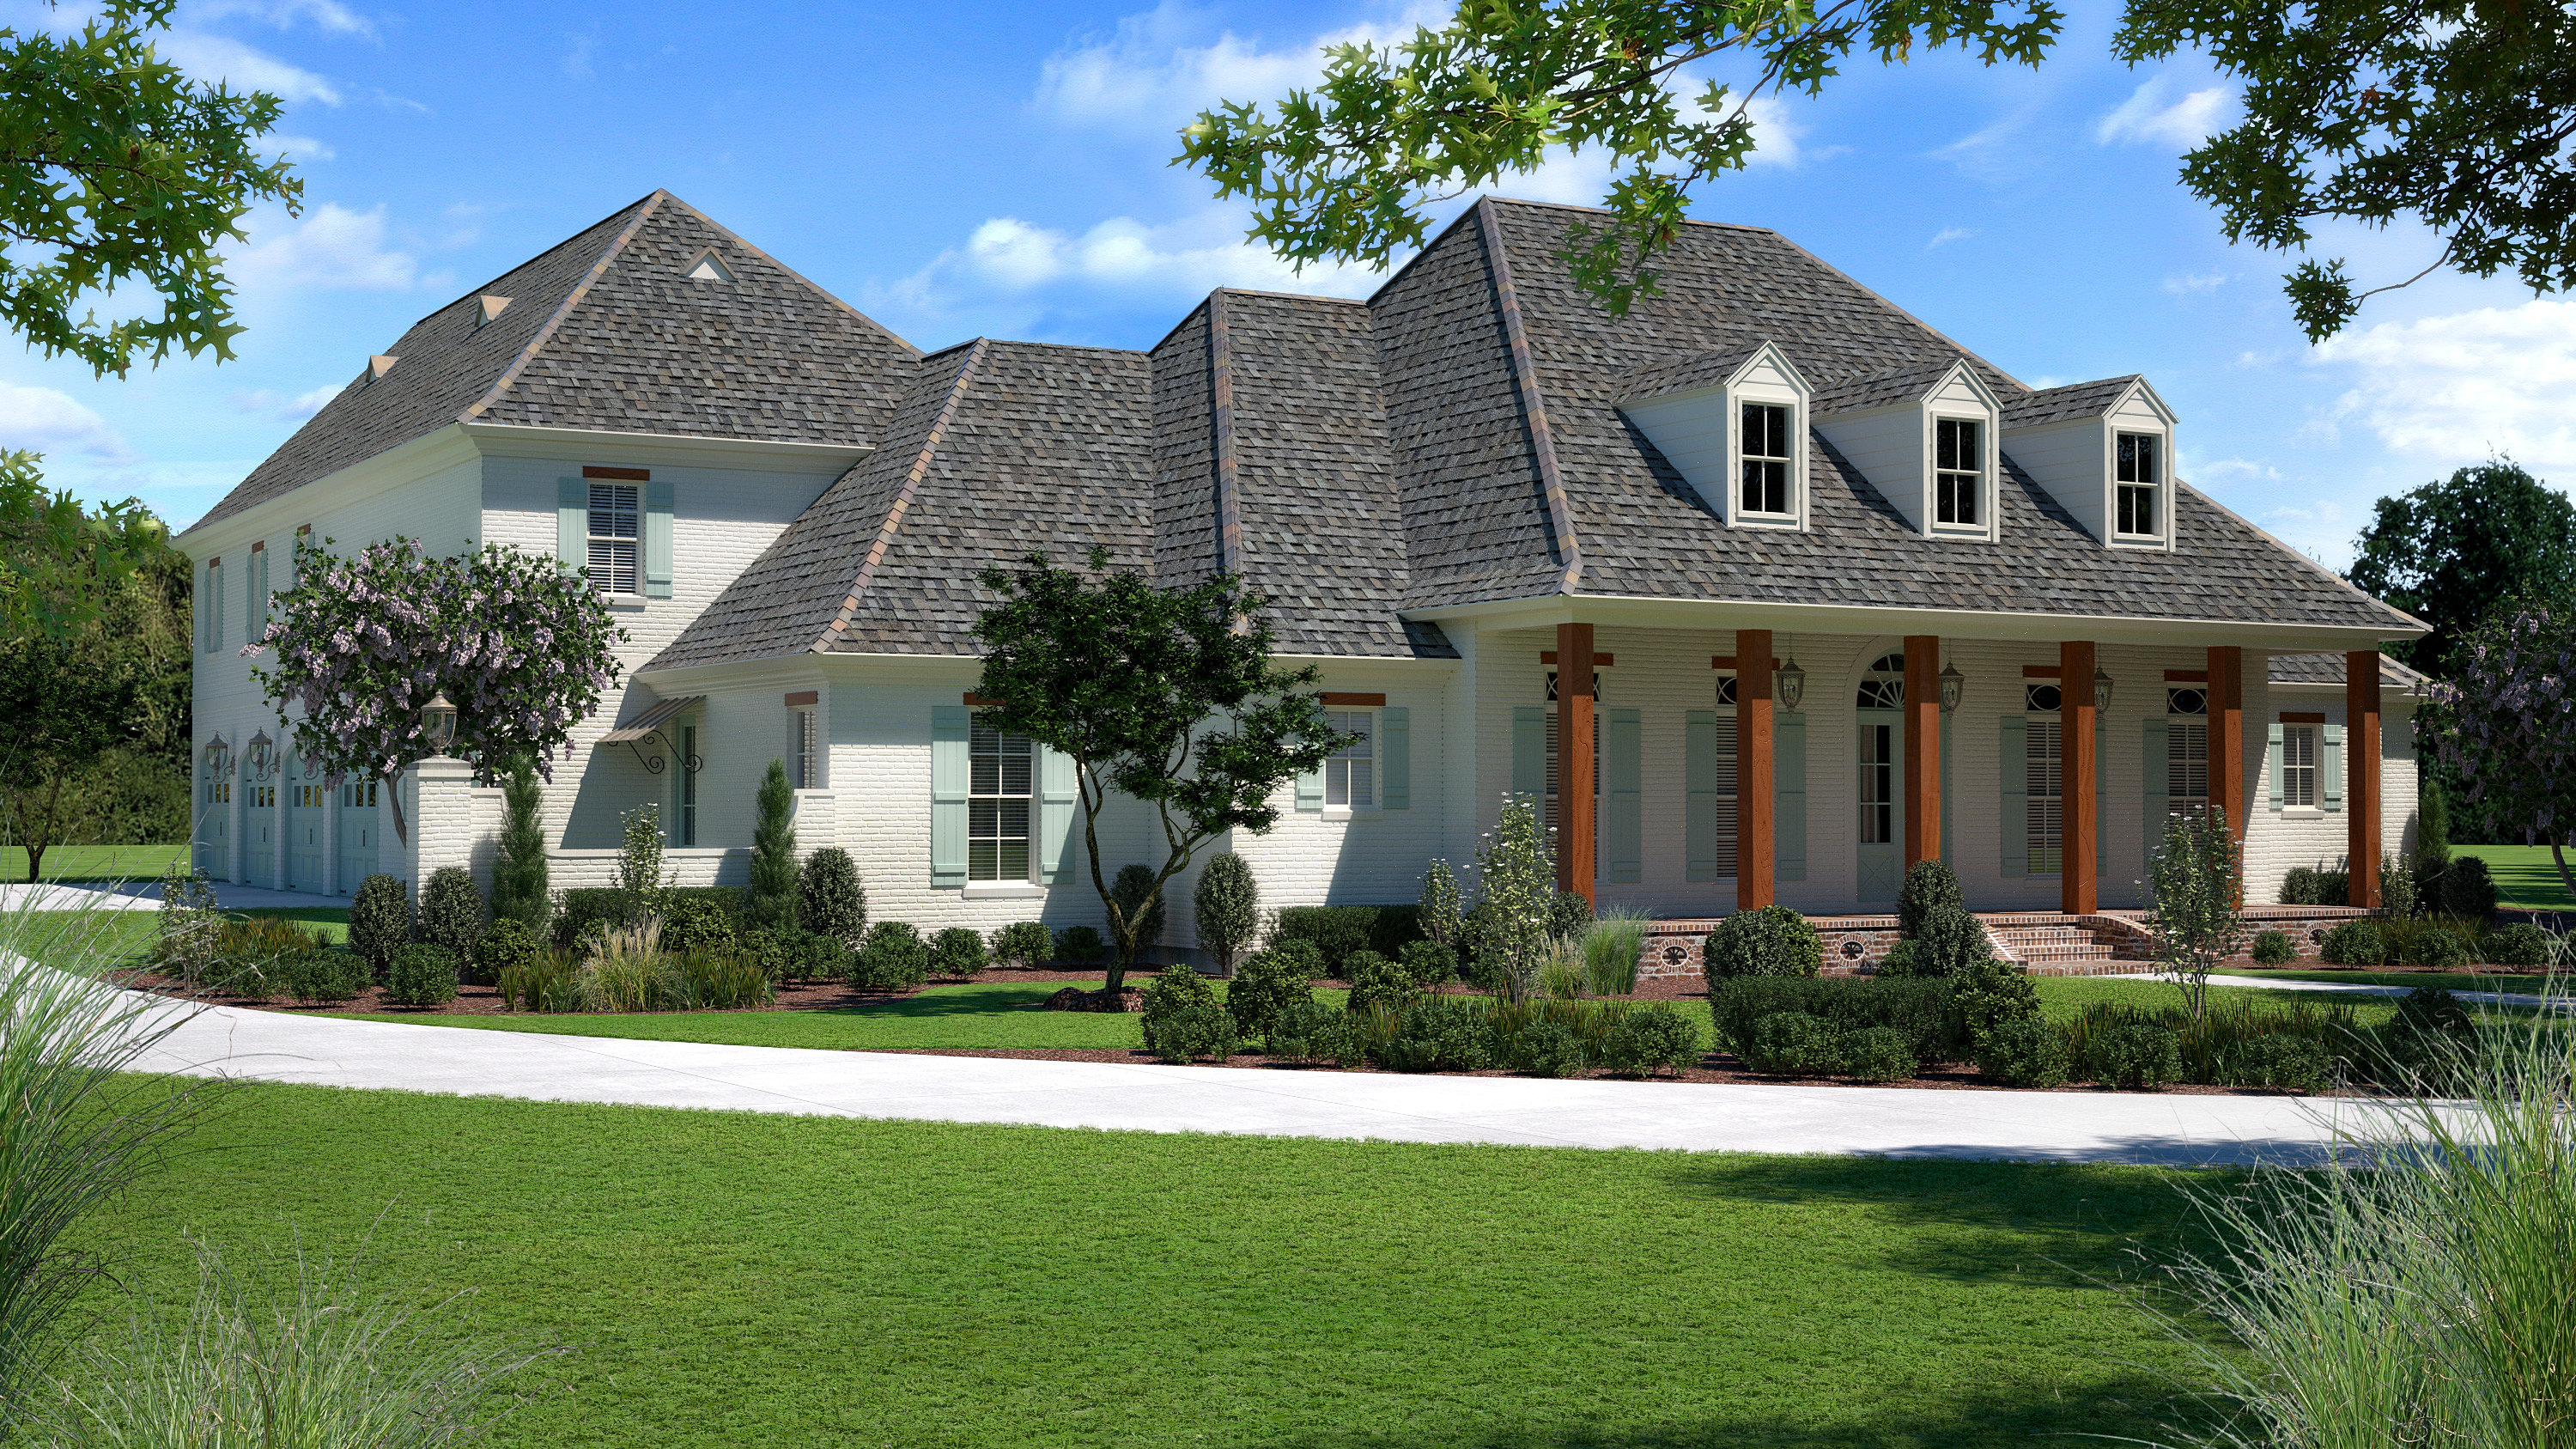 madden home design french country house plans acadian house plans. Interior Design Ideas. Home Design Ideas